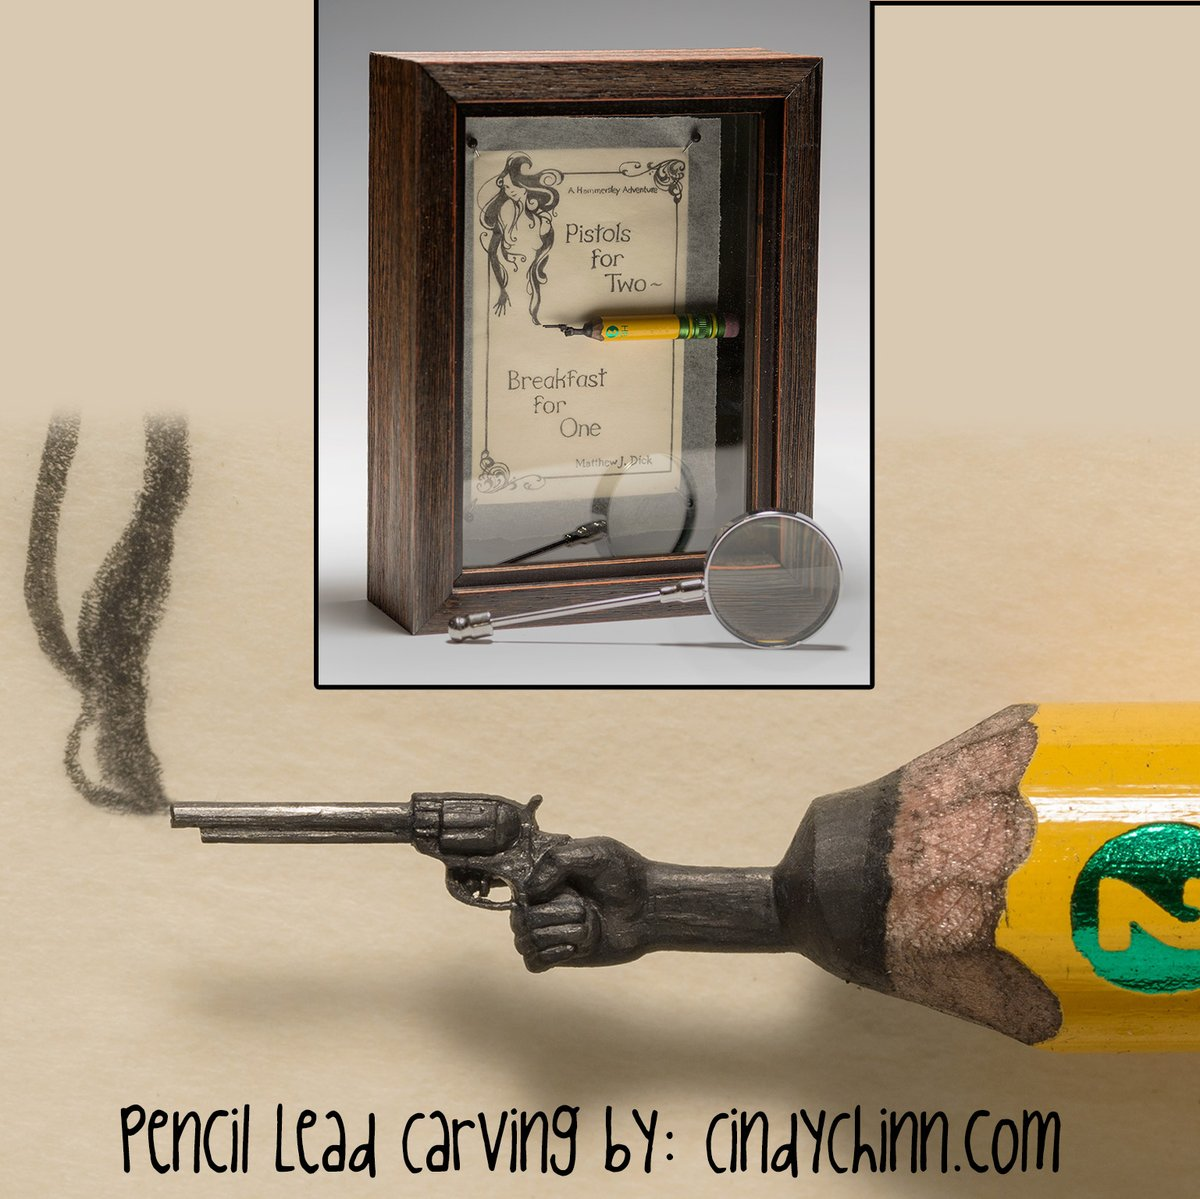 Here's a pencil carving I made a while back for an author based on the title of his book. .  . #carving #pencilcarving #handmade #pistol #smokinggun #art #artist #miniatureart #miniature #cindychinn